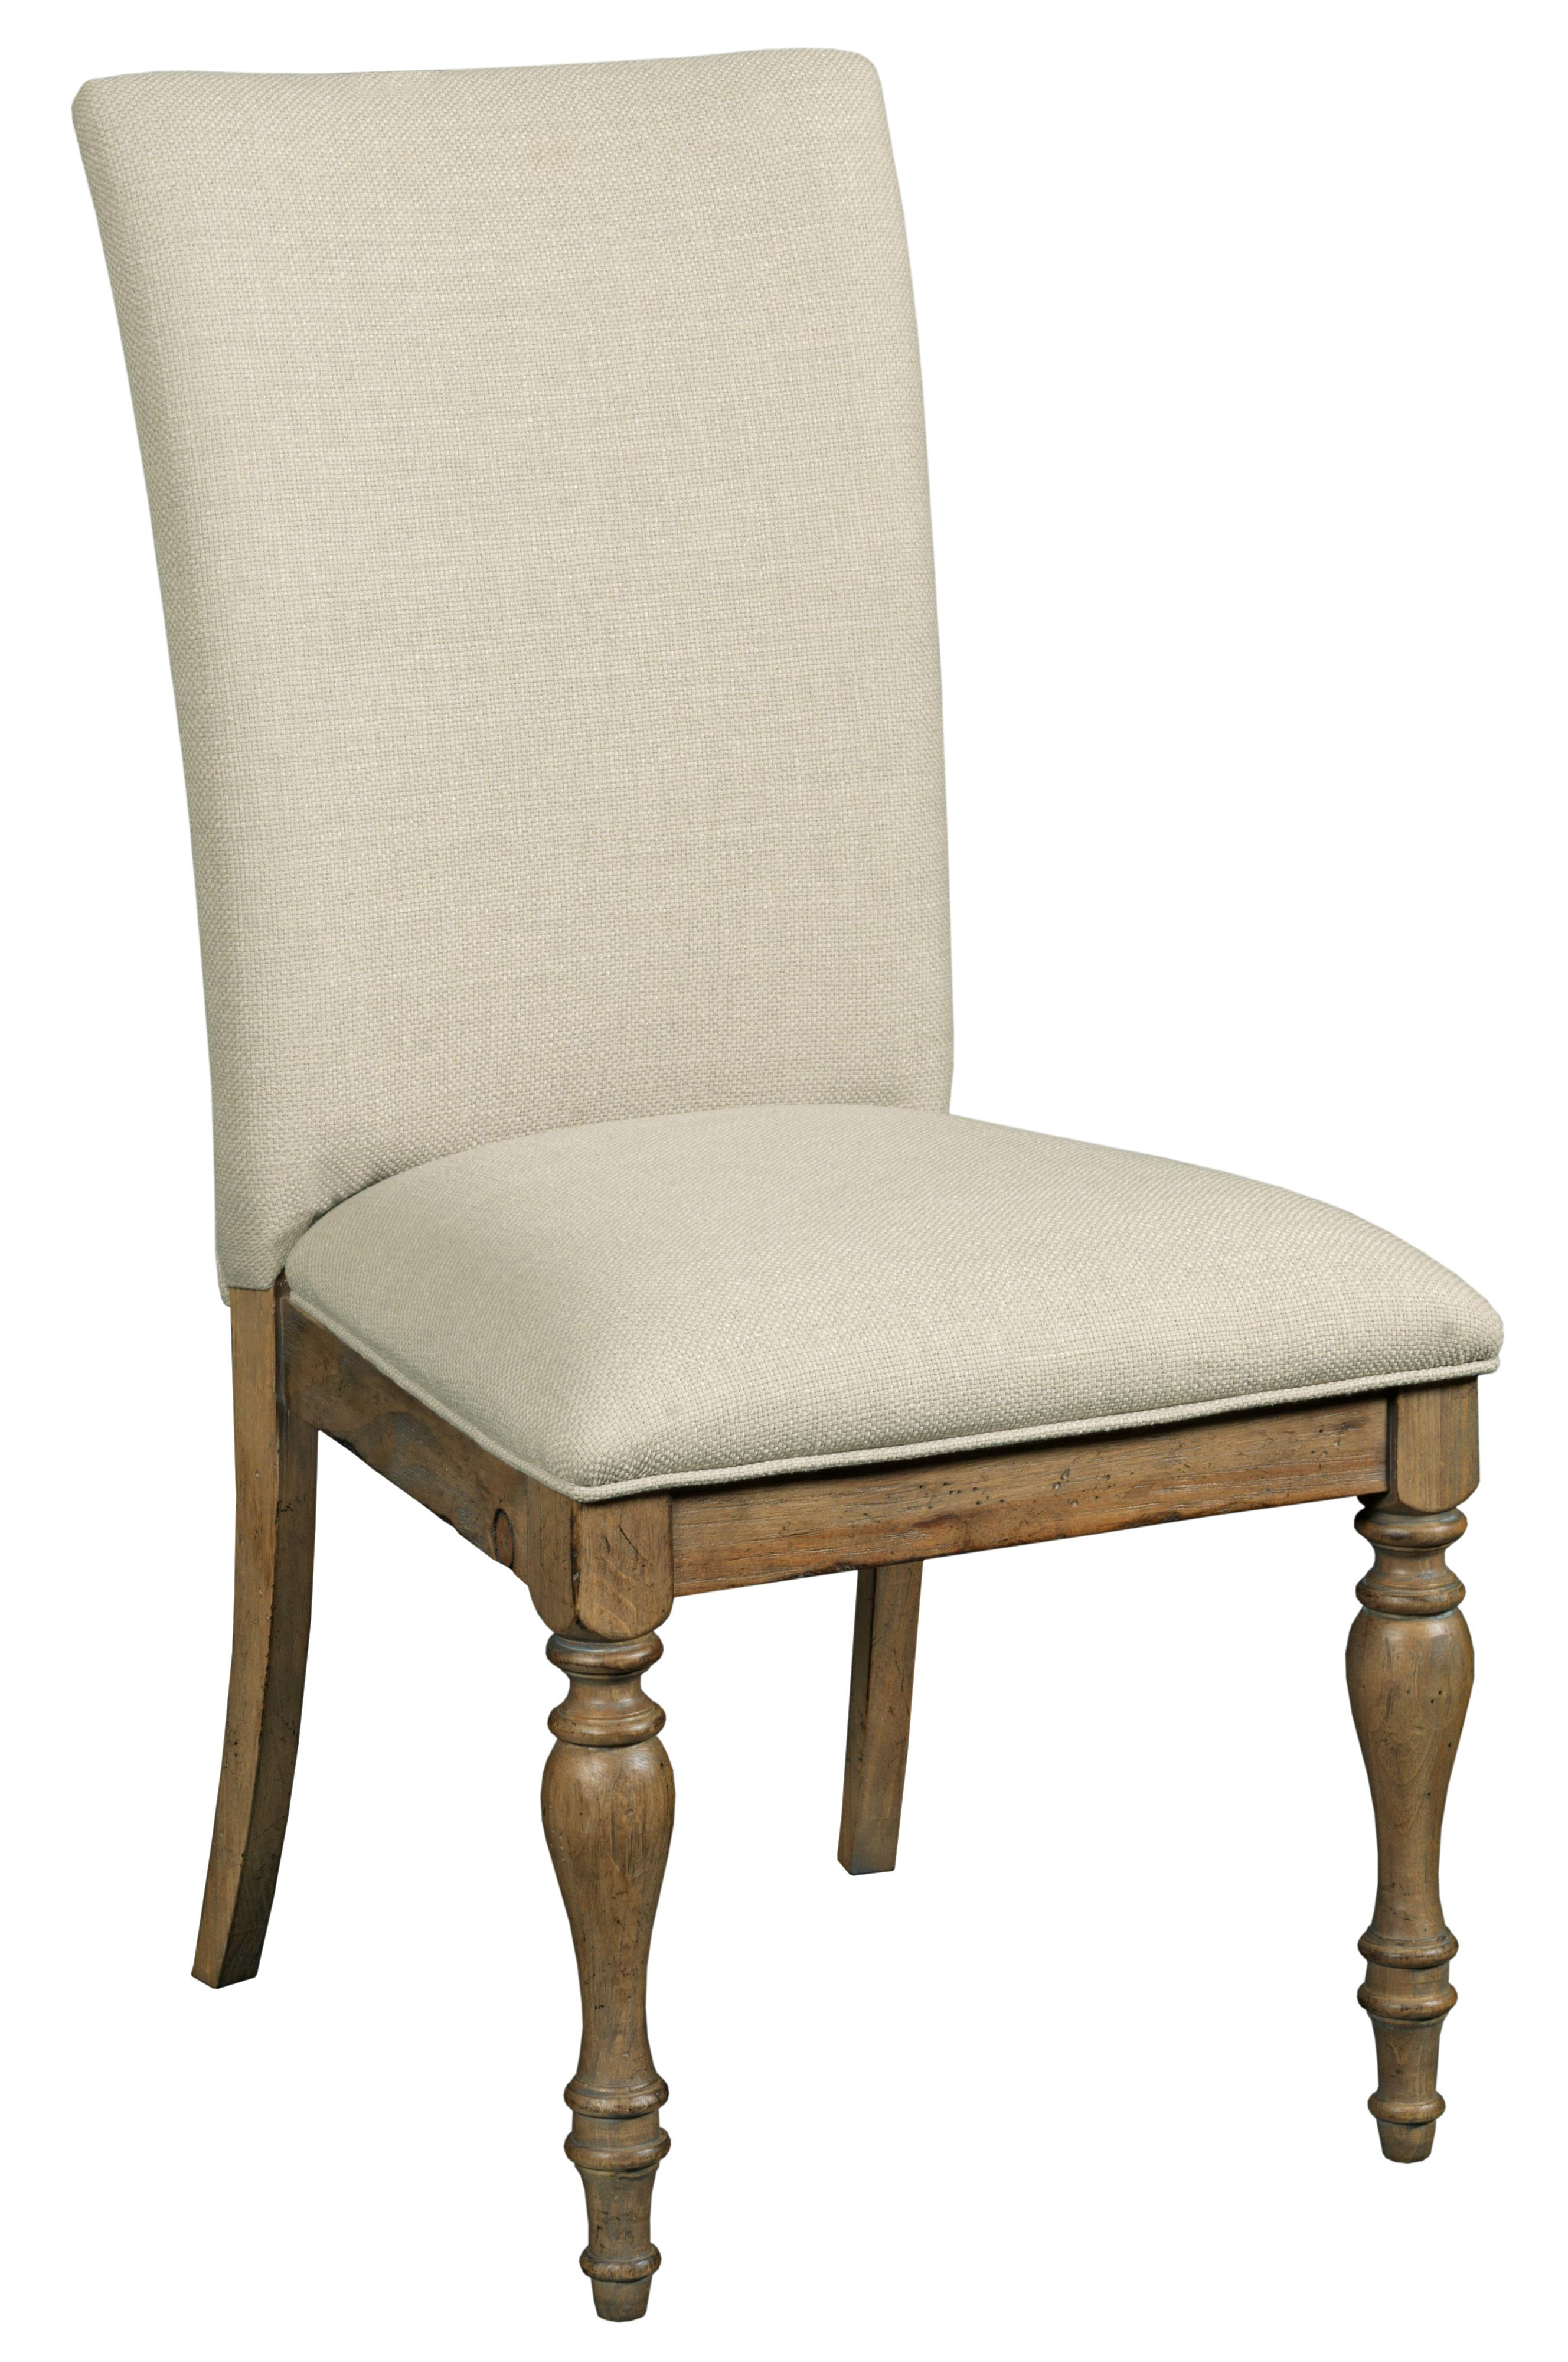 Weatherford Tasman Upholstered Chair by Kincaid Furniture at Johnny Janosik